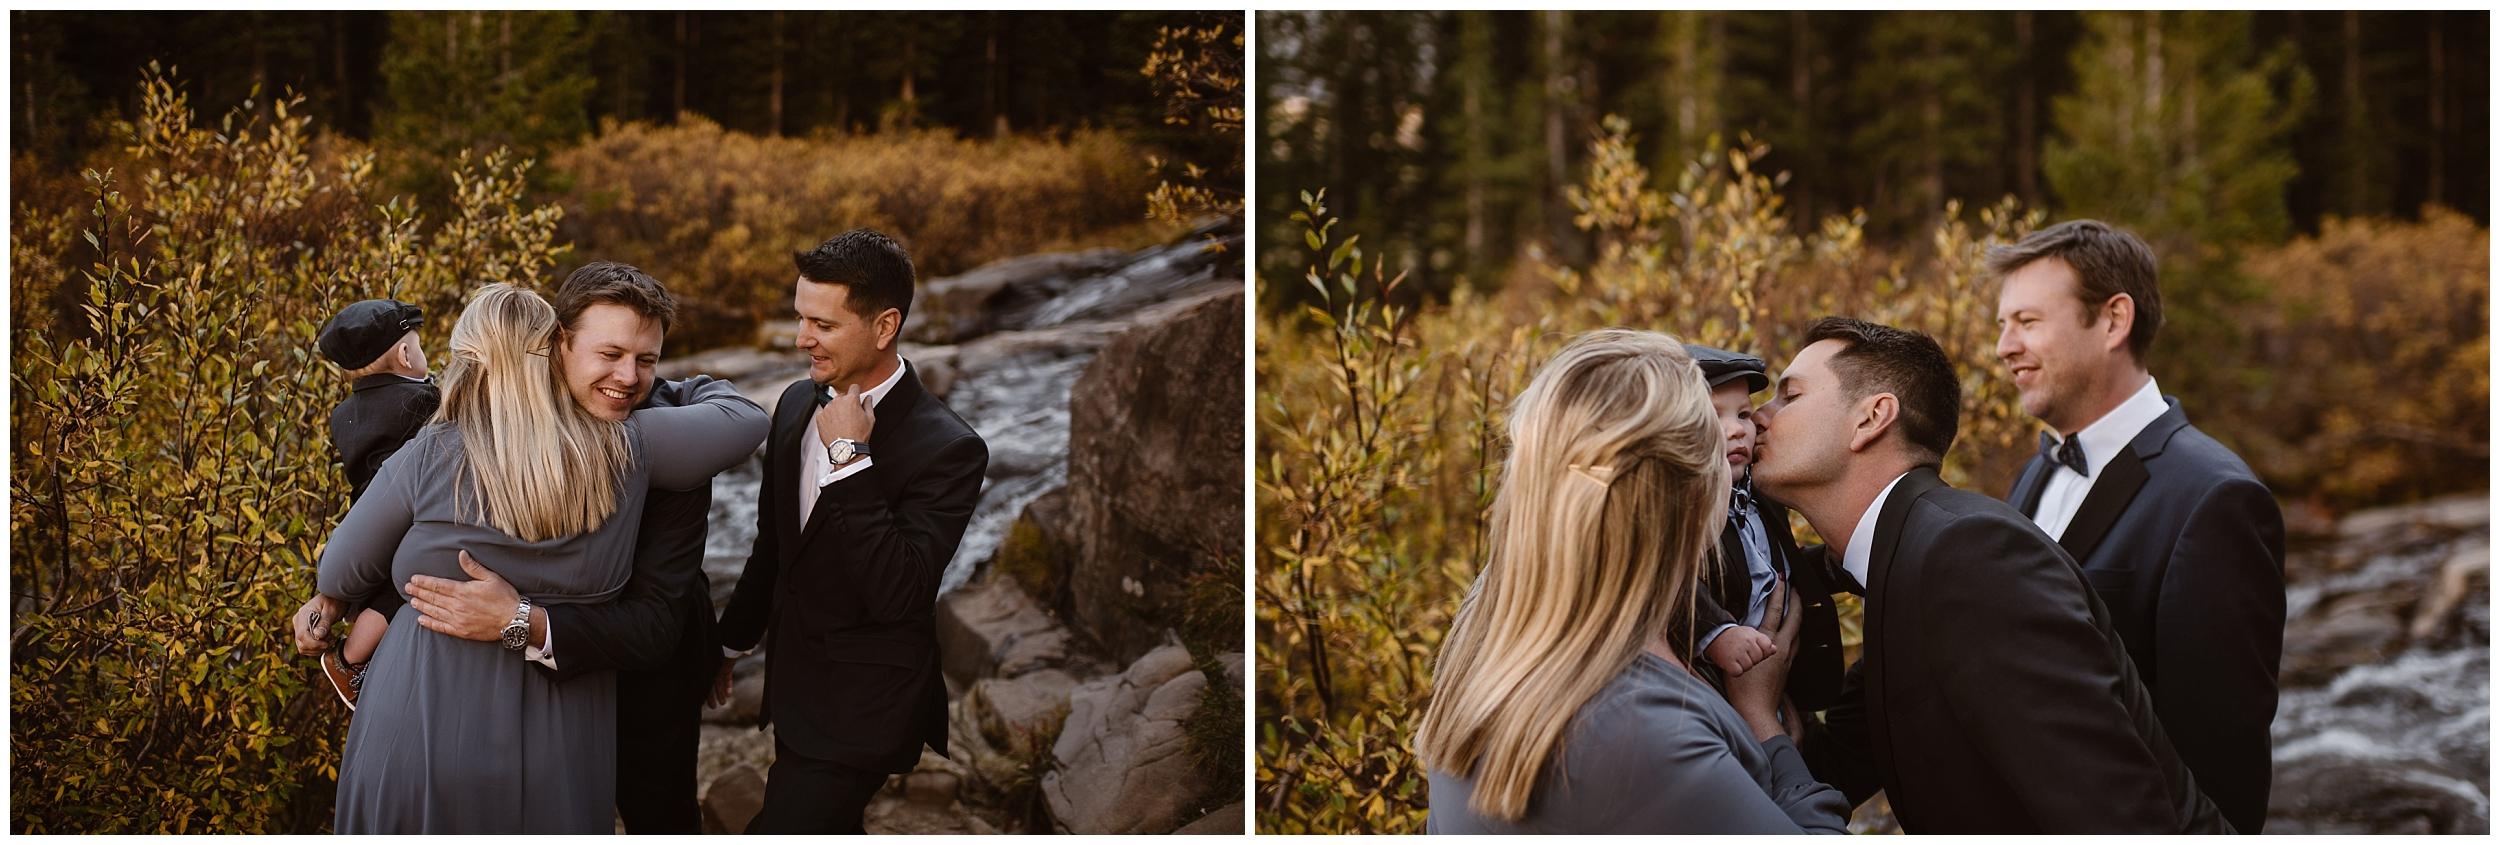 Brian and Ernie party after eloping by celebrating with family and kissing their 9-month-old godson in these side-by-side elopement photos captured by Colorado wedding photographer Adventure Instead.